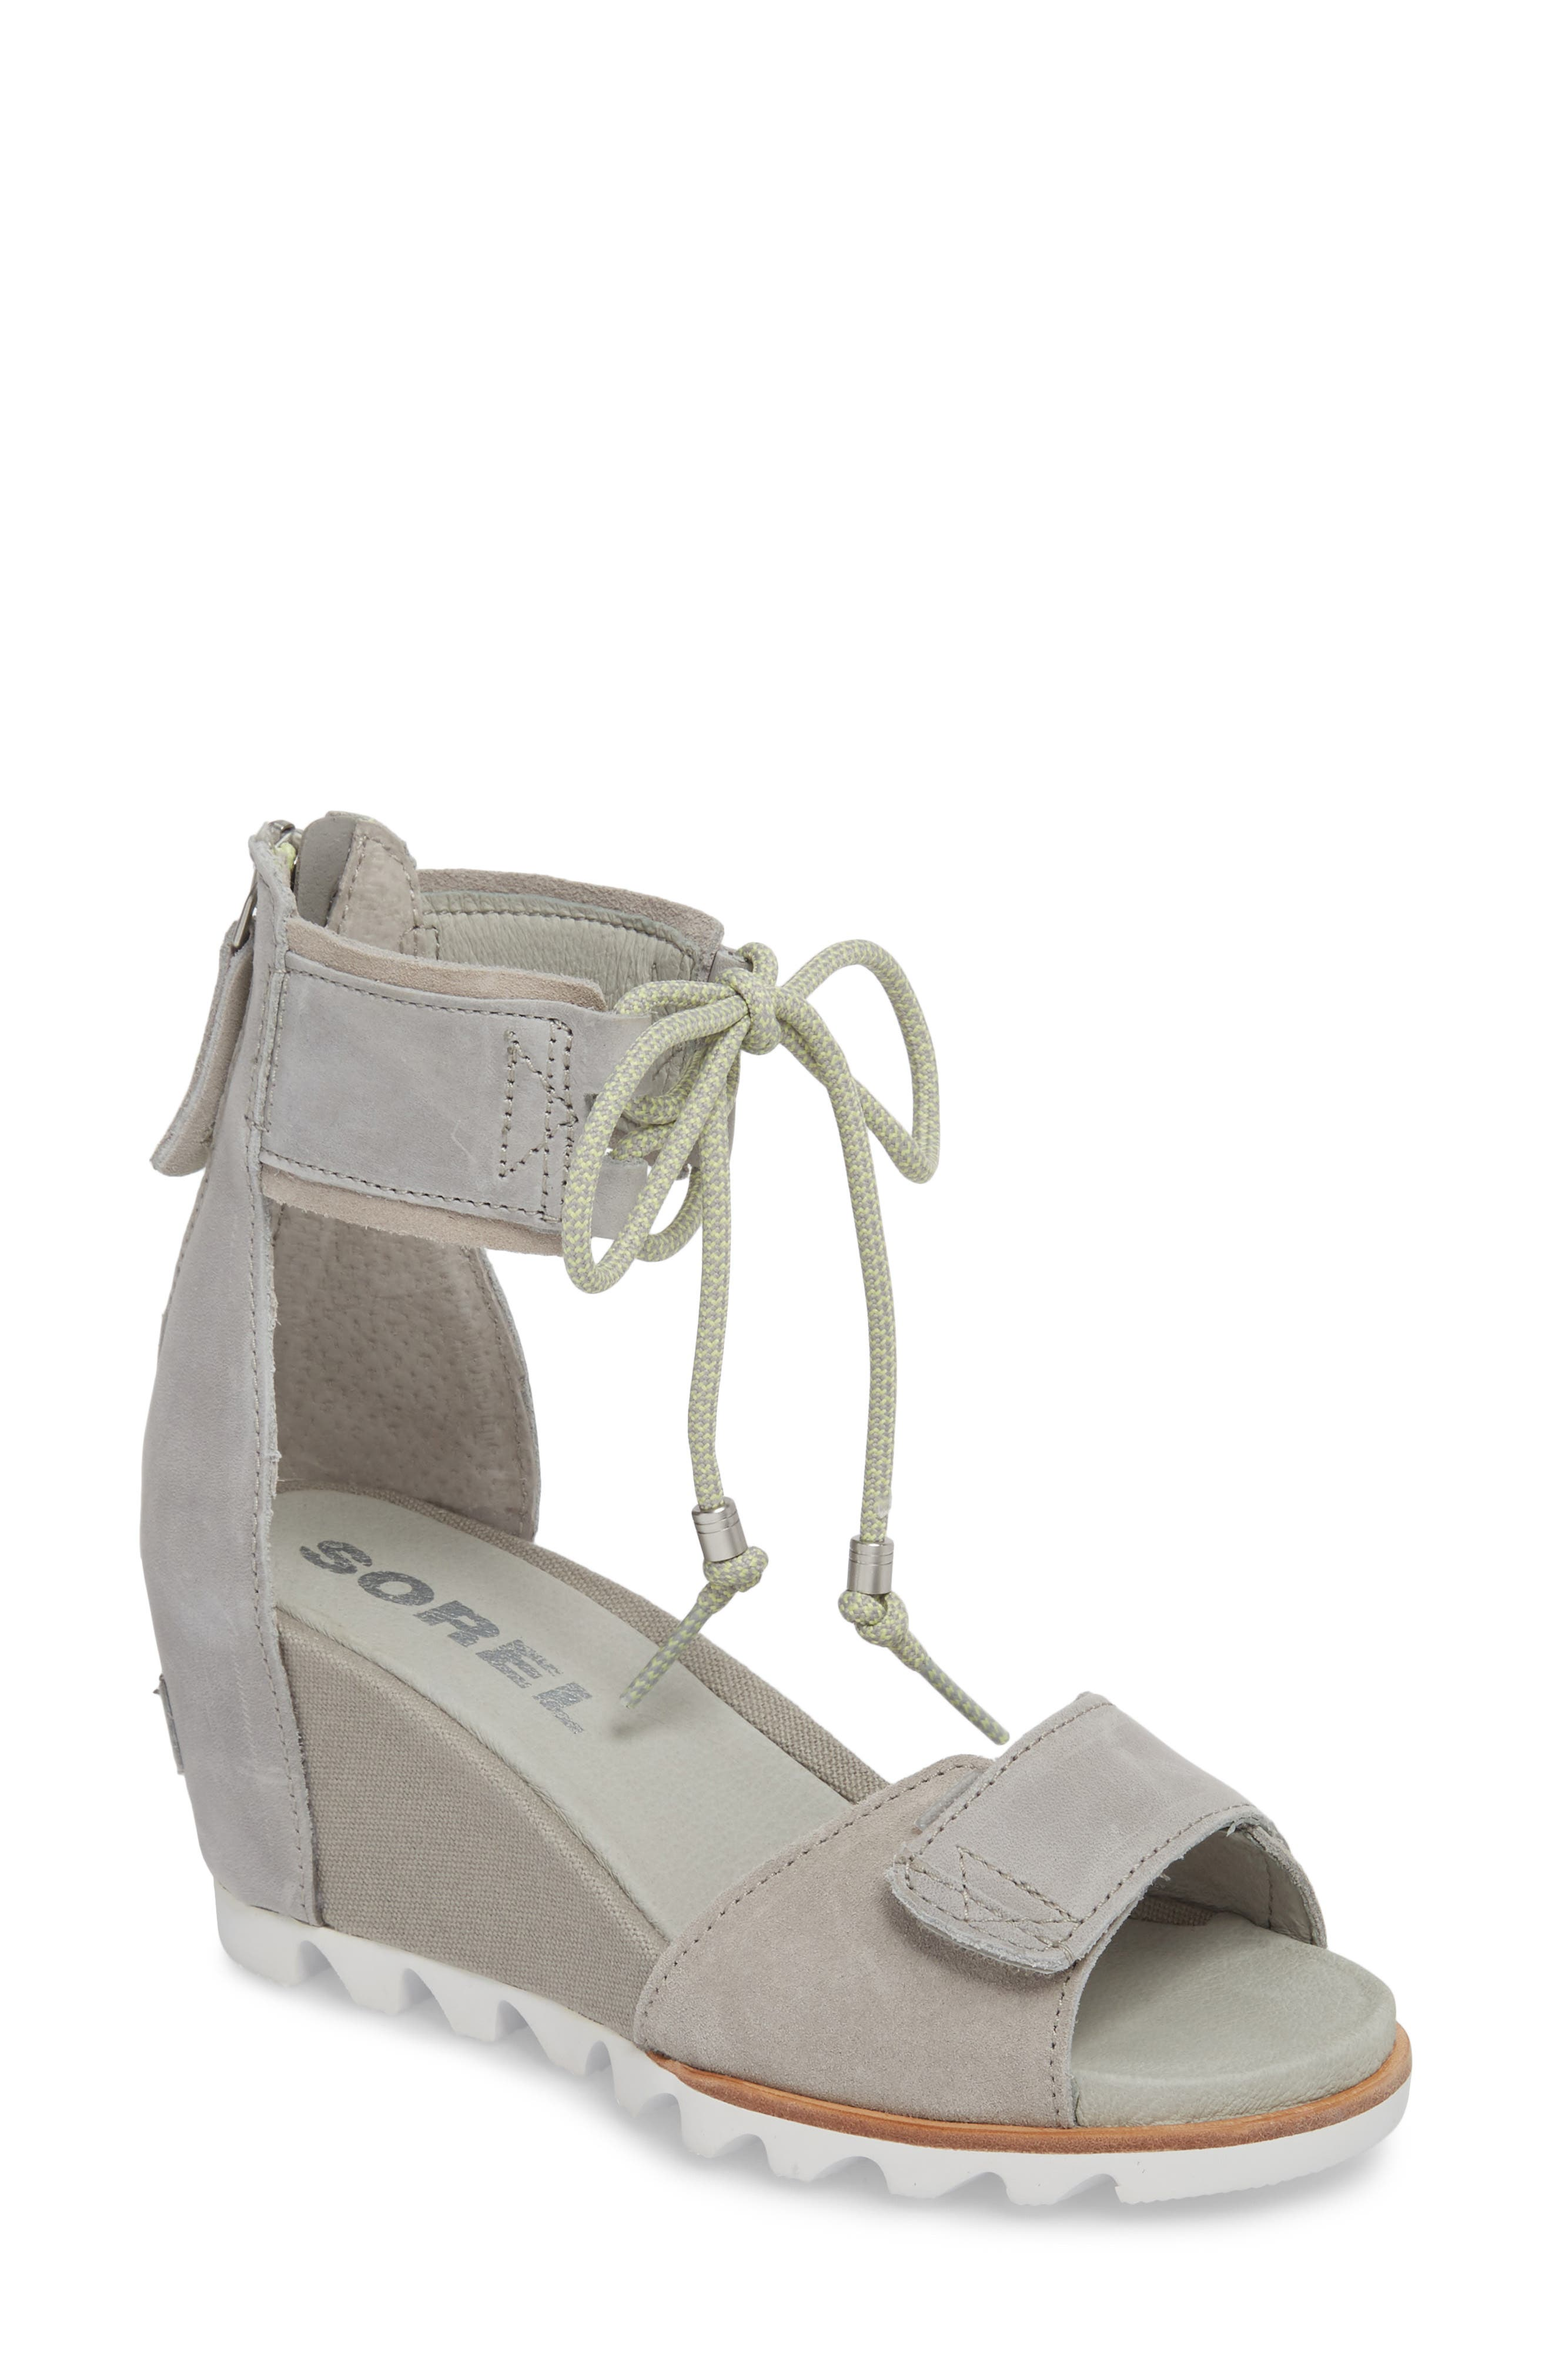 Joanie Cuff Wedge Sandal,                             Main thumbnail 1, color,                             Dove